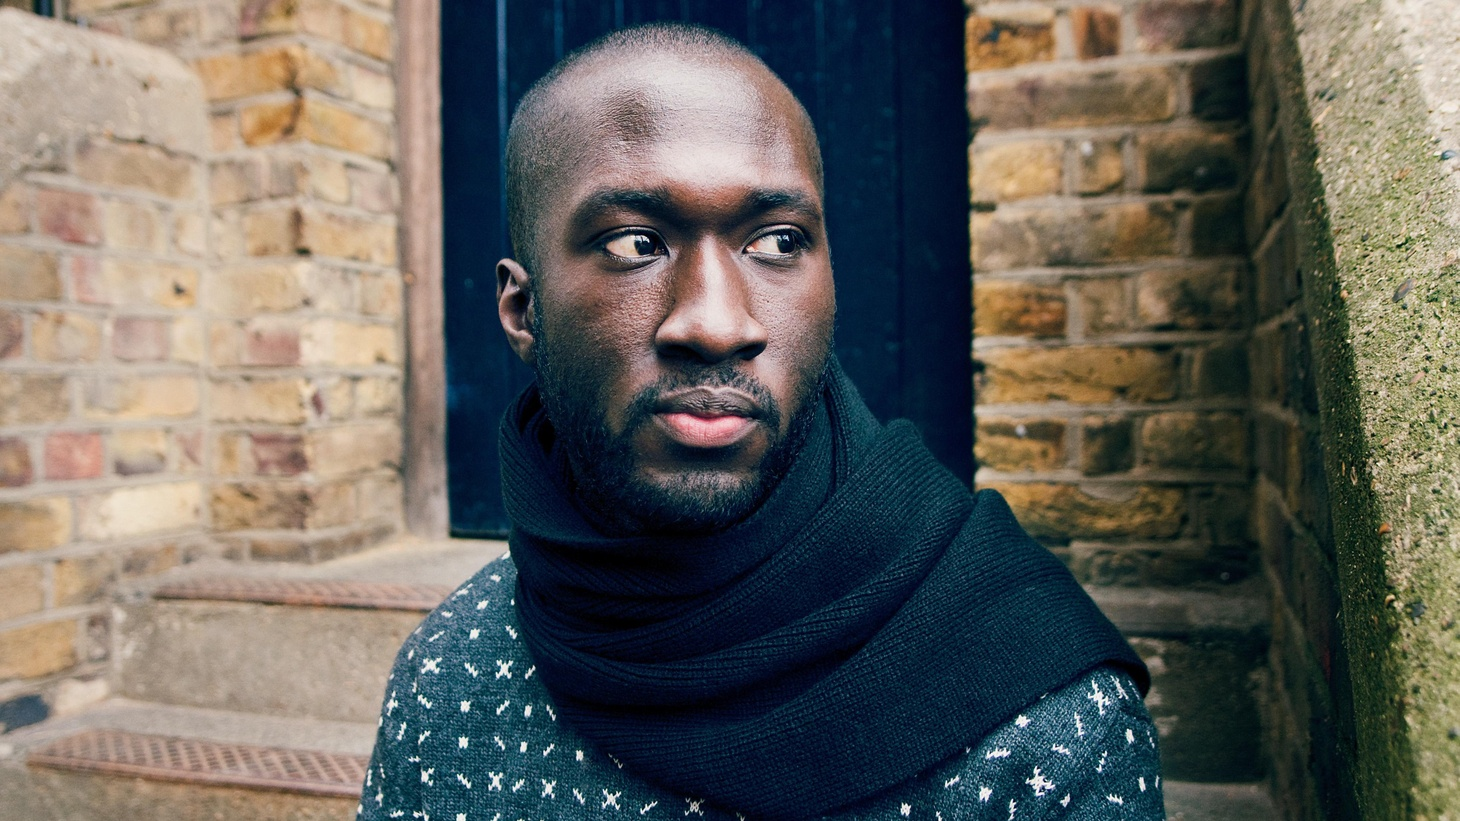 London-based singer/songwriter Kwes is a talent to keep an eye on...